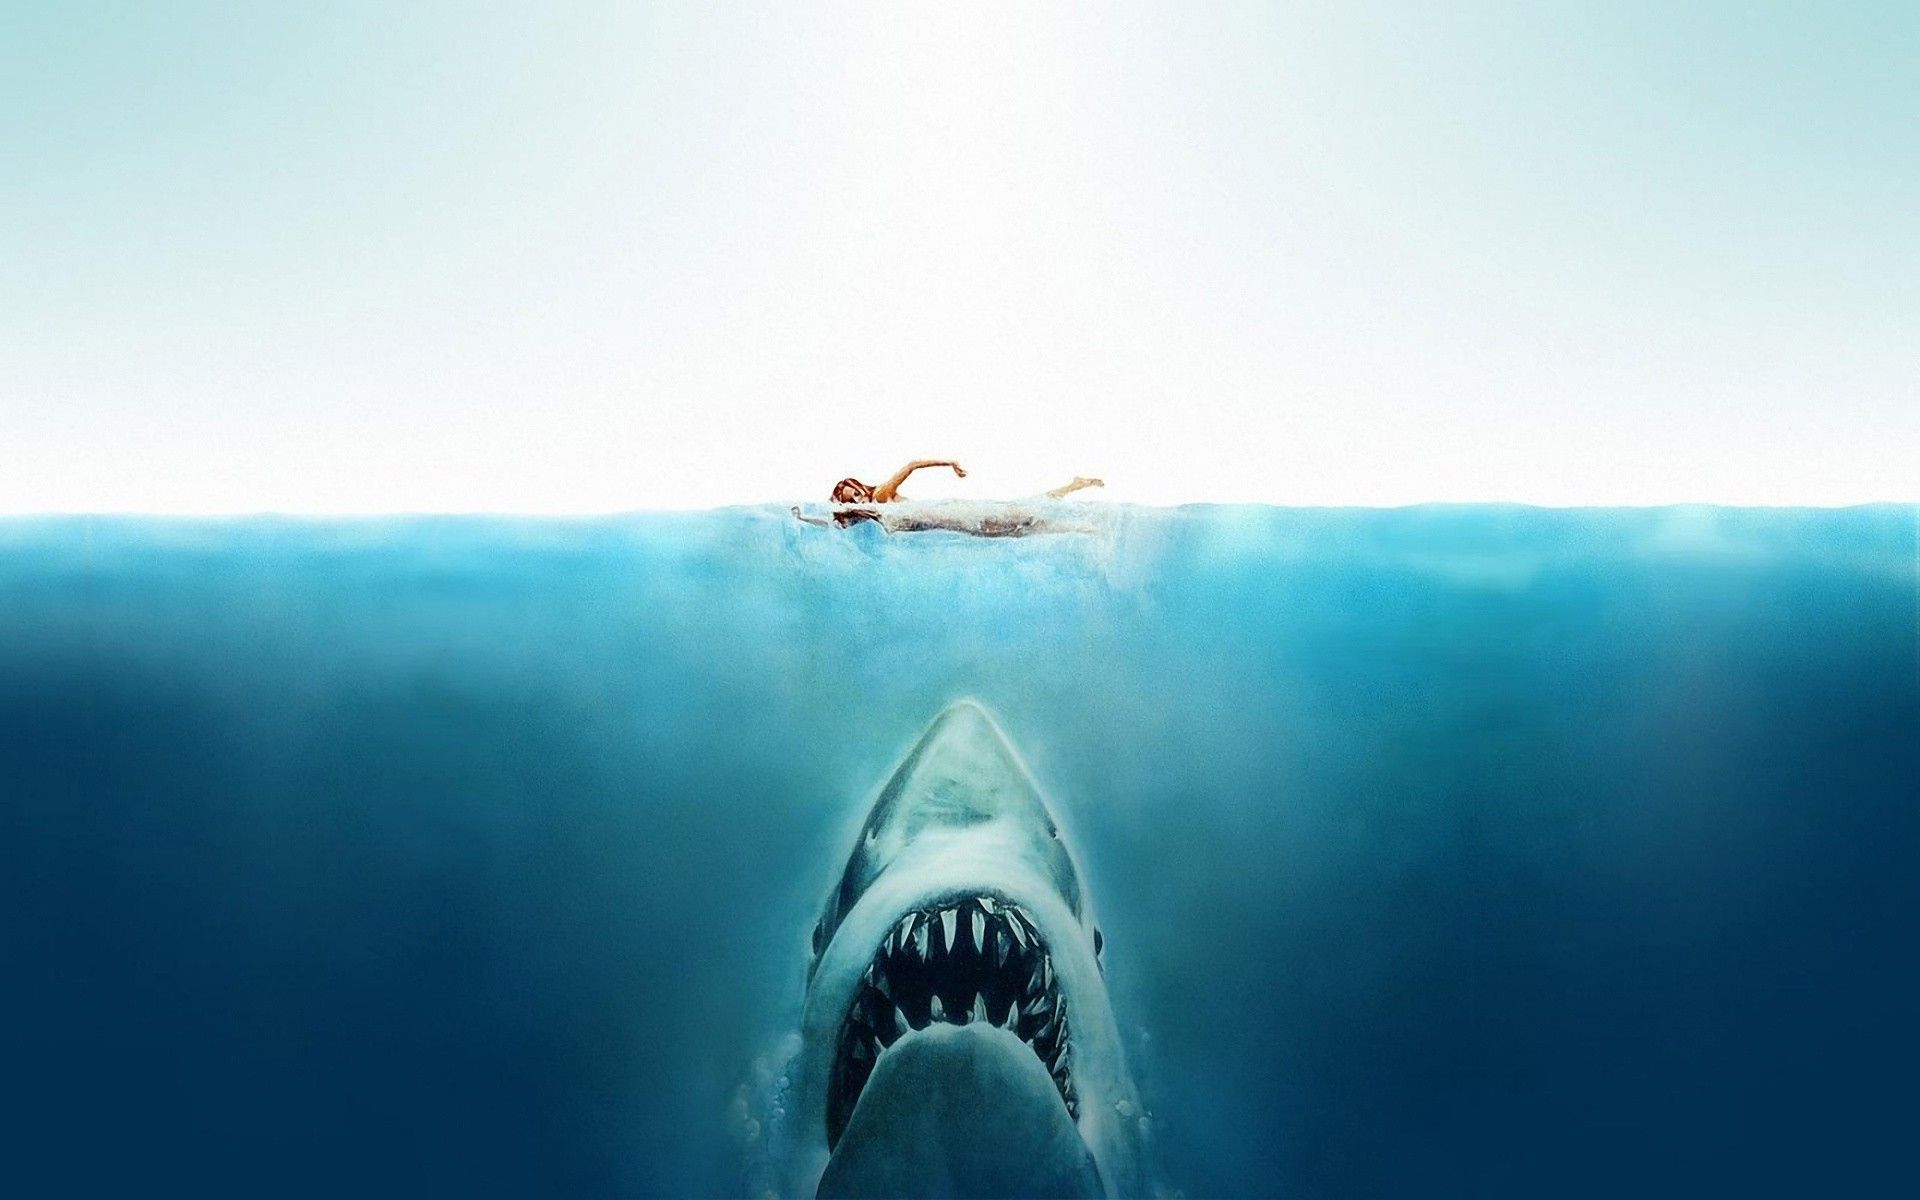 Download hd wallpapers of 248848-Jaws, Movies, Shark ...